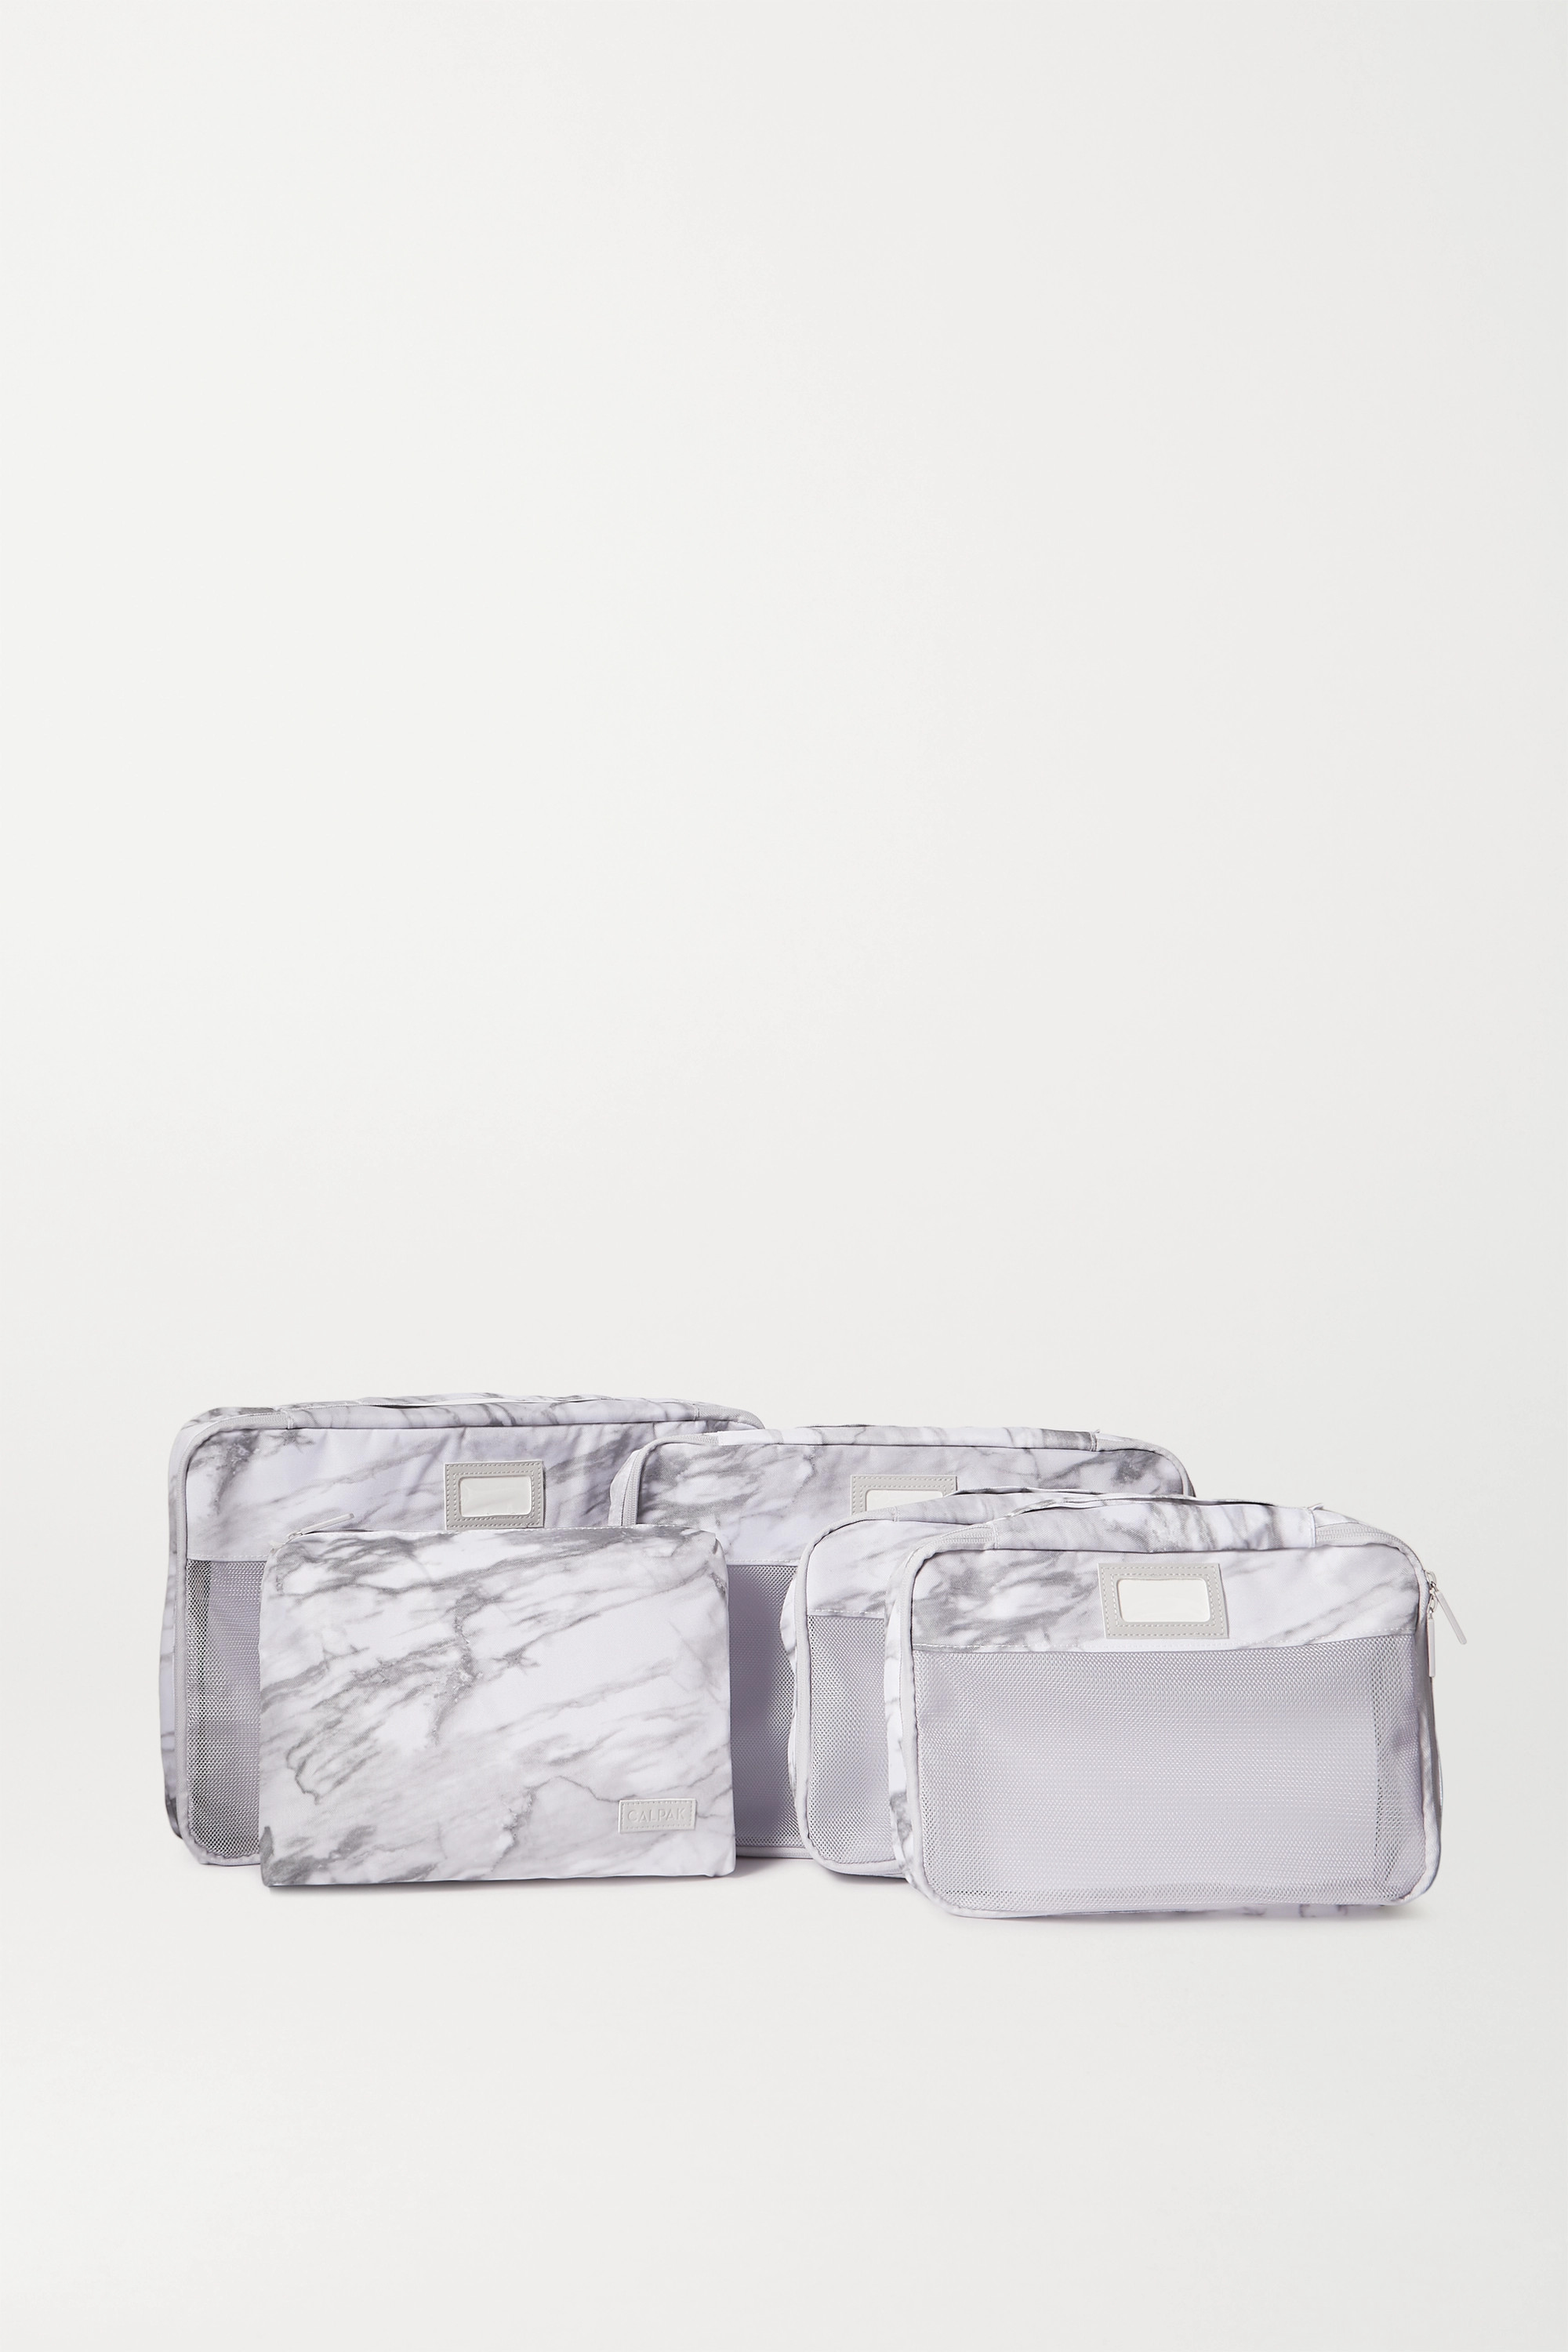 CALPAK Set of 5 marbled canvas and mesh packing cubes